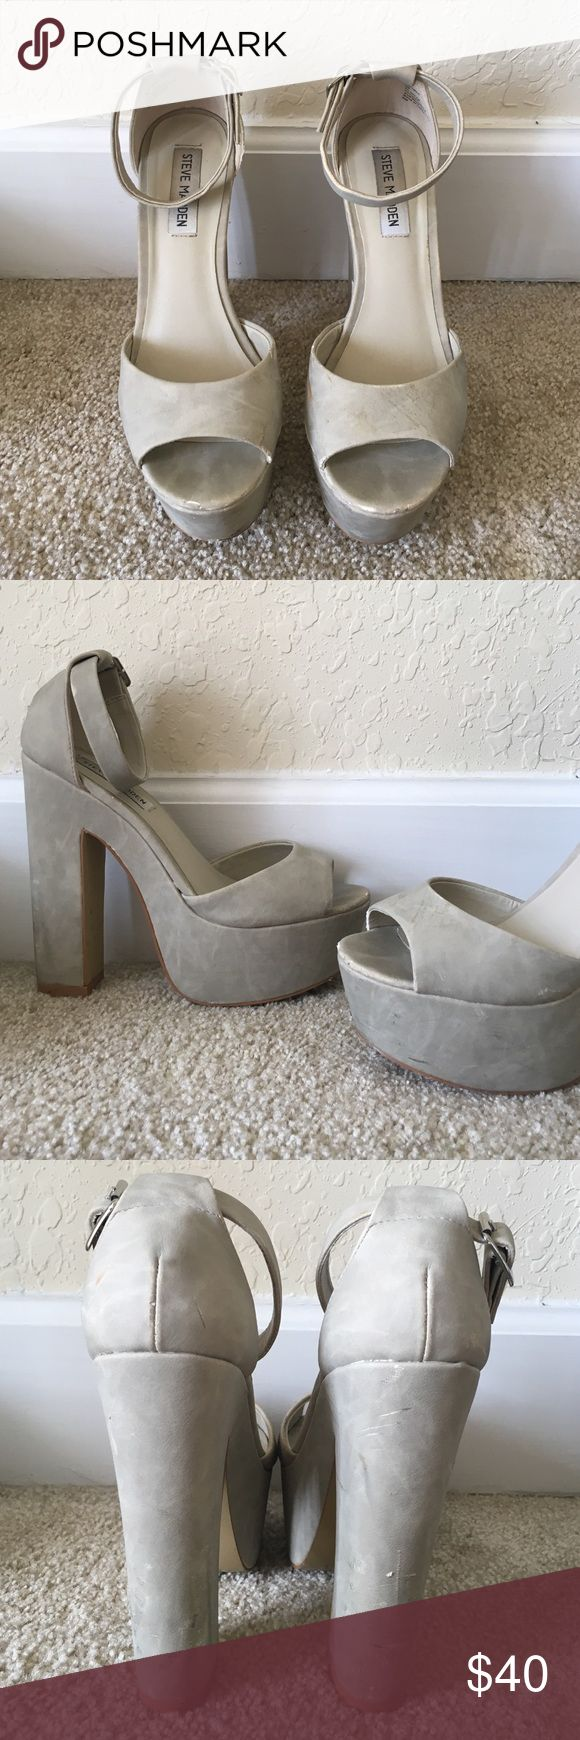 Steve Madden Heels These classy pumps are in excellent condition! Still have a full life ahead of them! They have minor scratches and minor dirt marks but can easily be cleaned if you know how to clean Suade. They fit gorgeous and are VERY comfortable! Steve Madden Shoes Heels